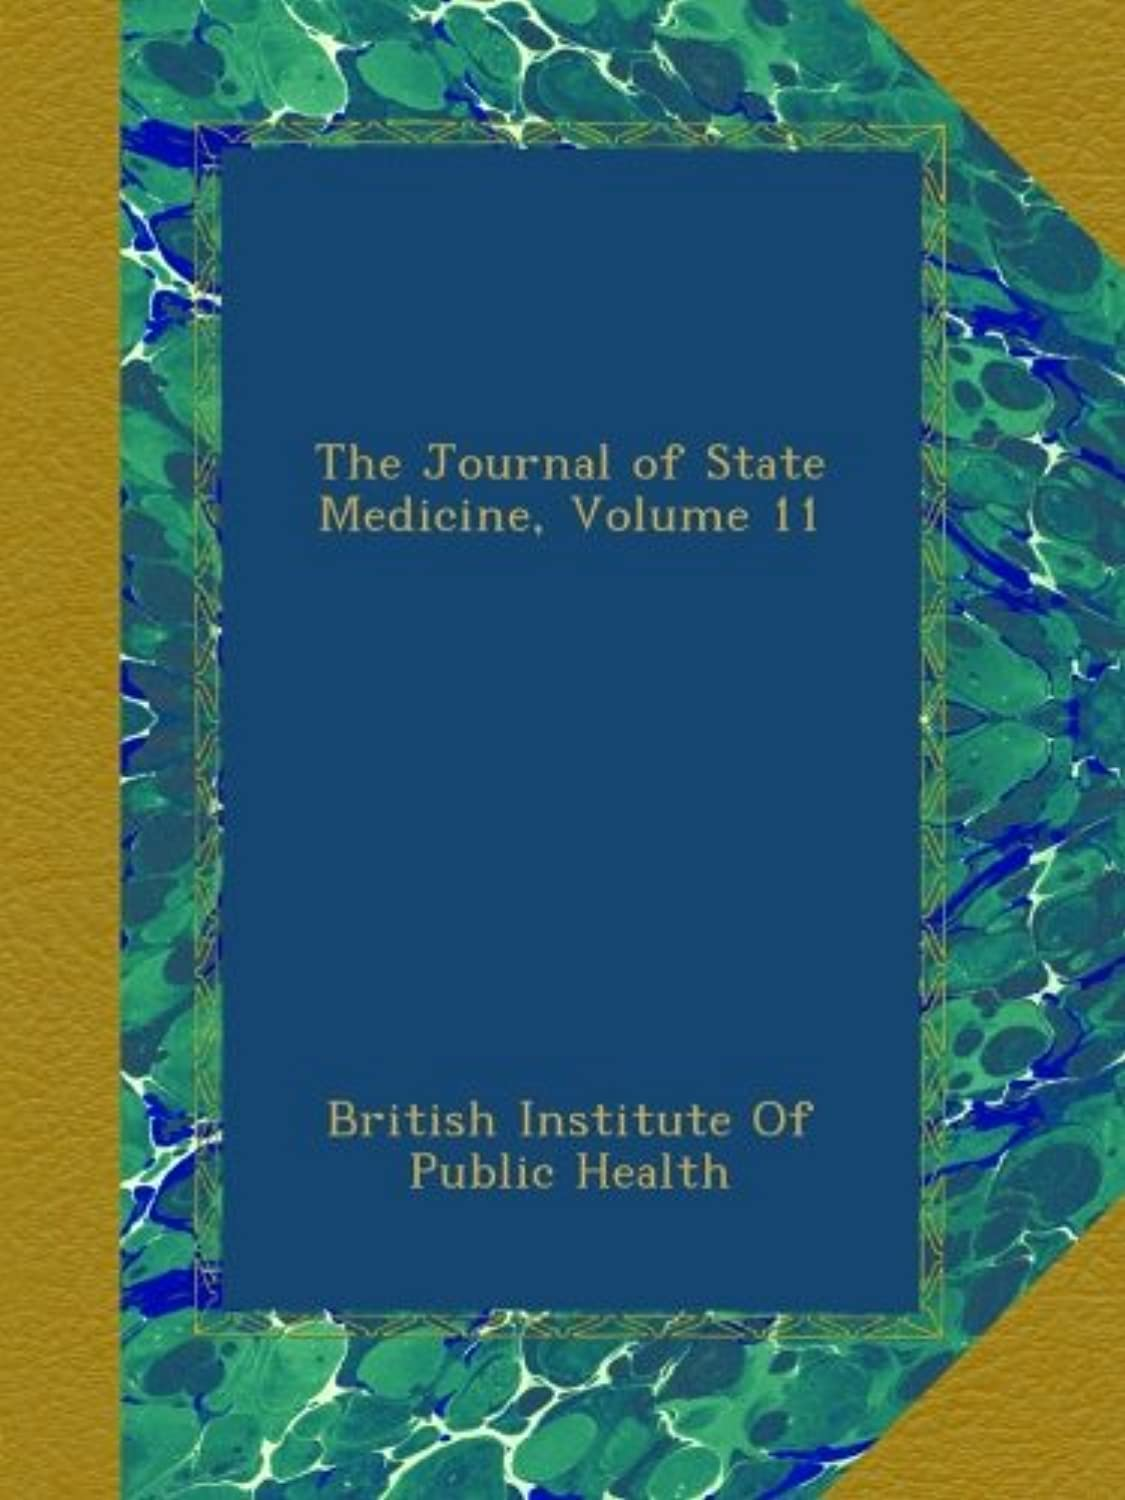 The Journal of State Medicine, Volume 11